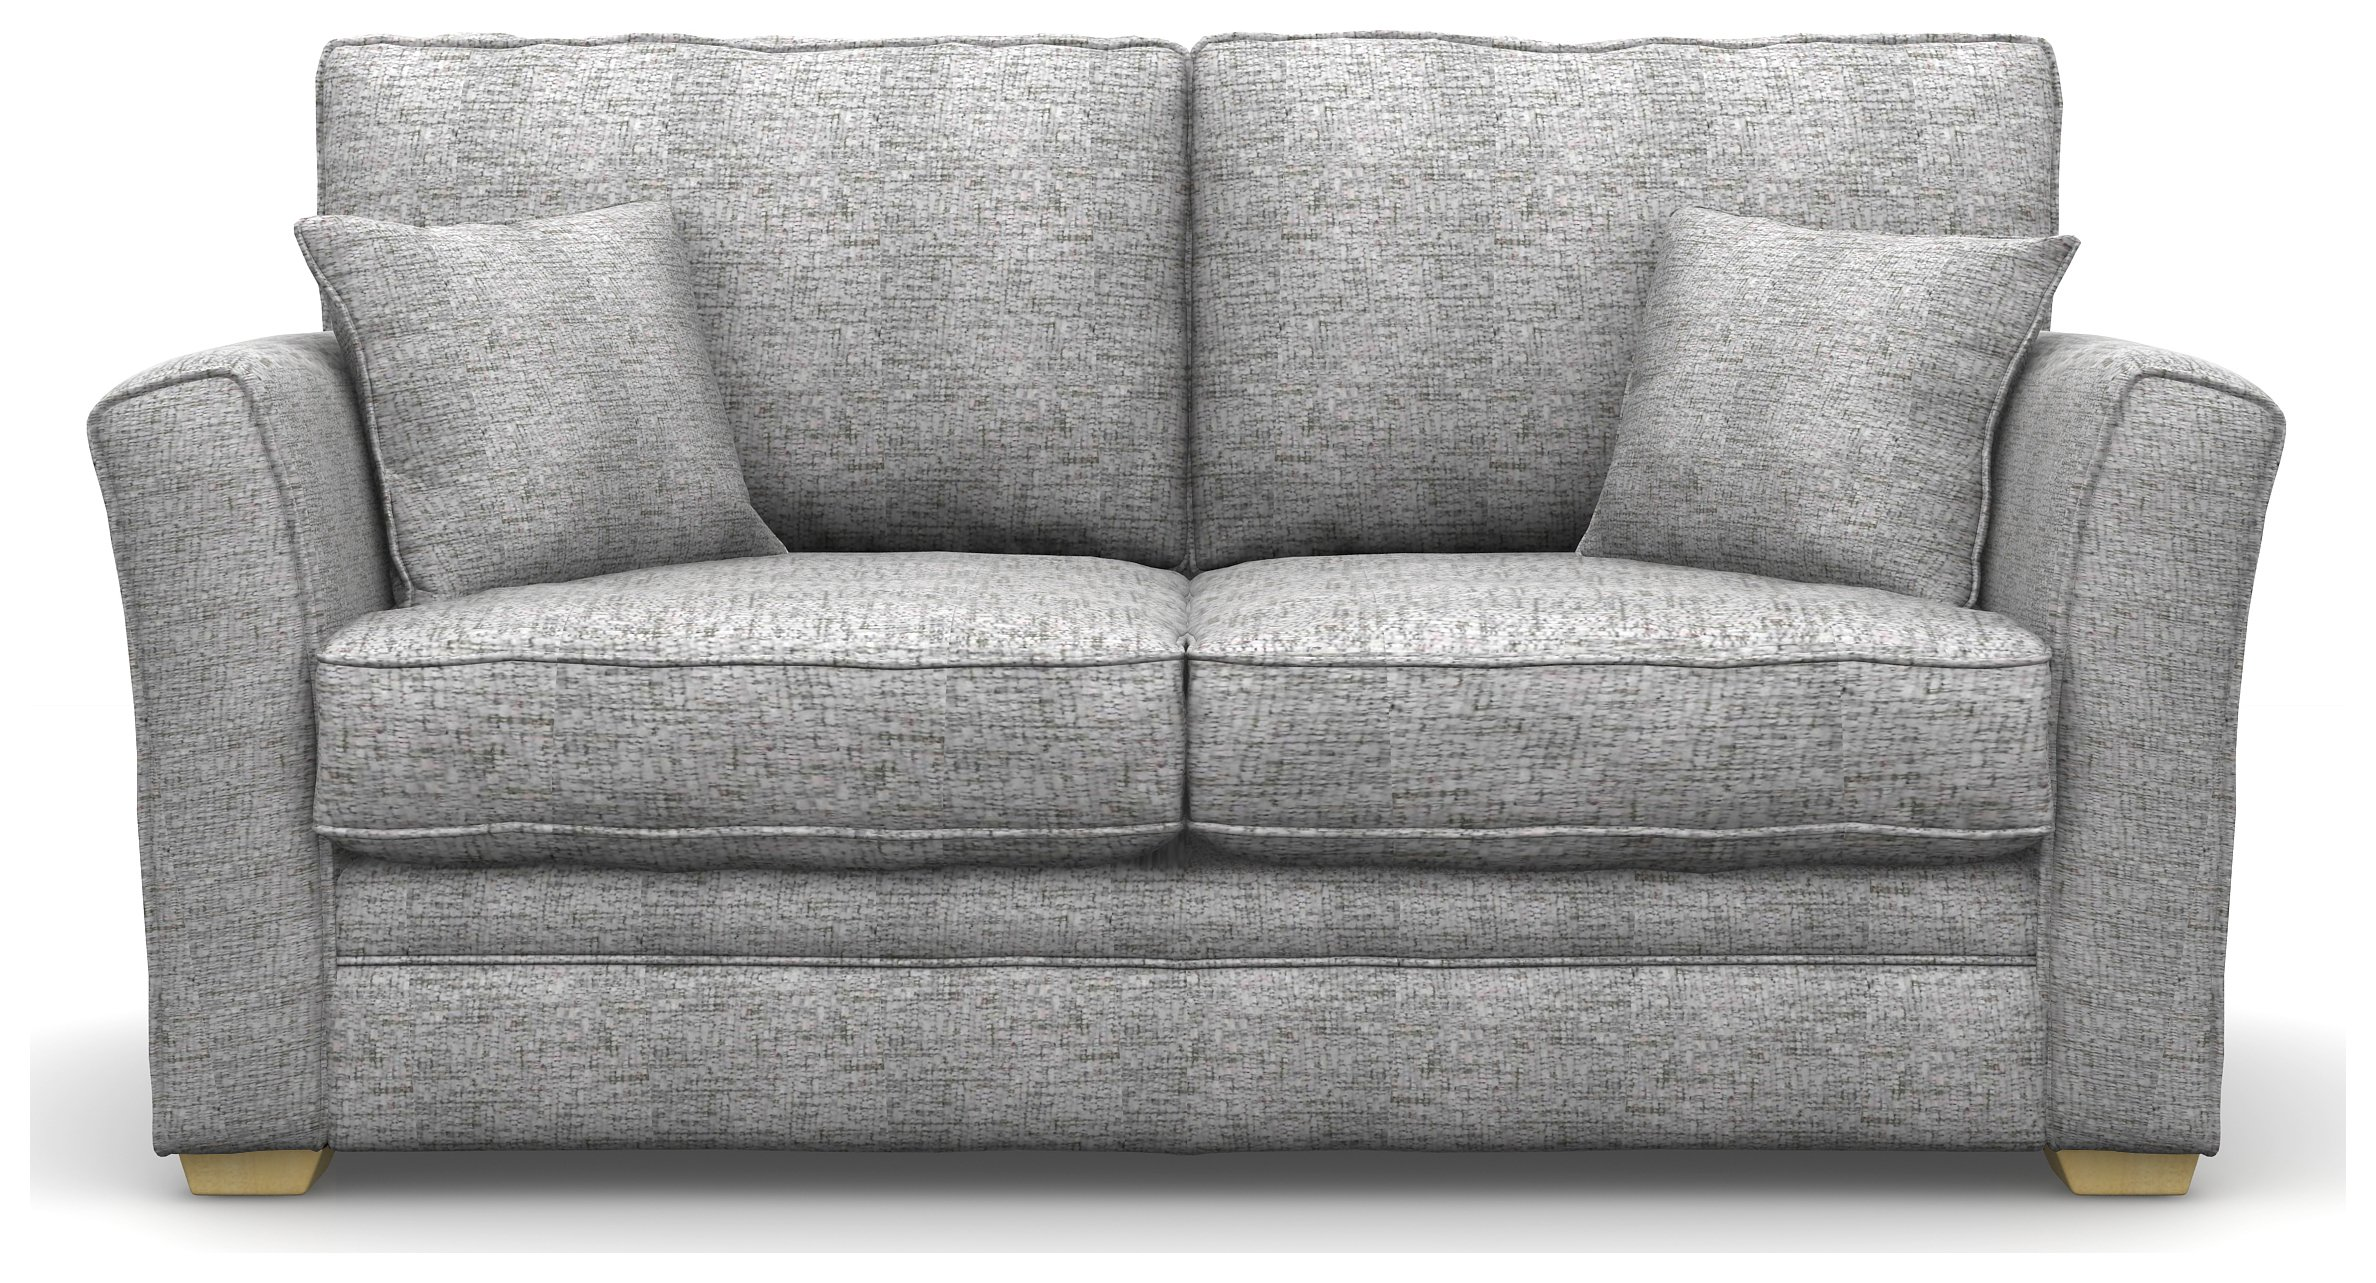 Create your own Heart of House Malton 2 Seater Fabric Sofa Bed - Silver